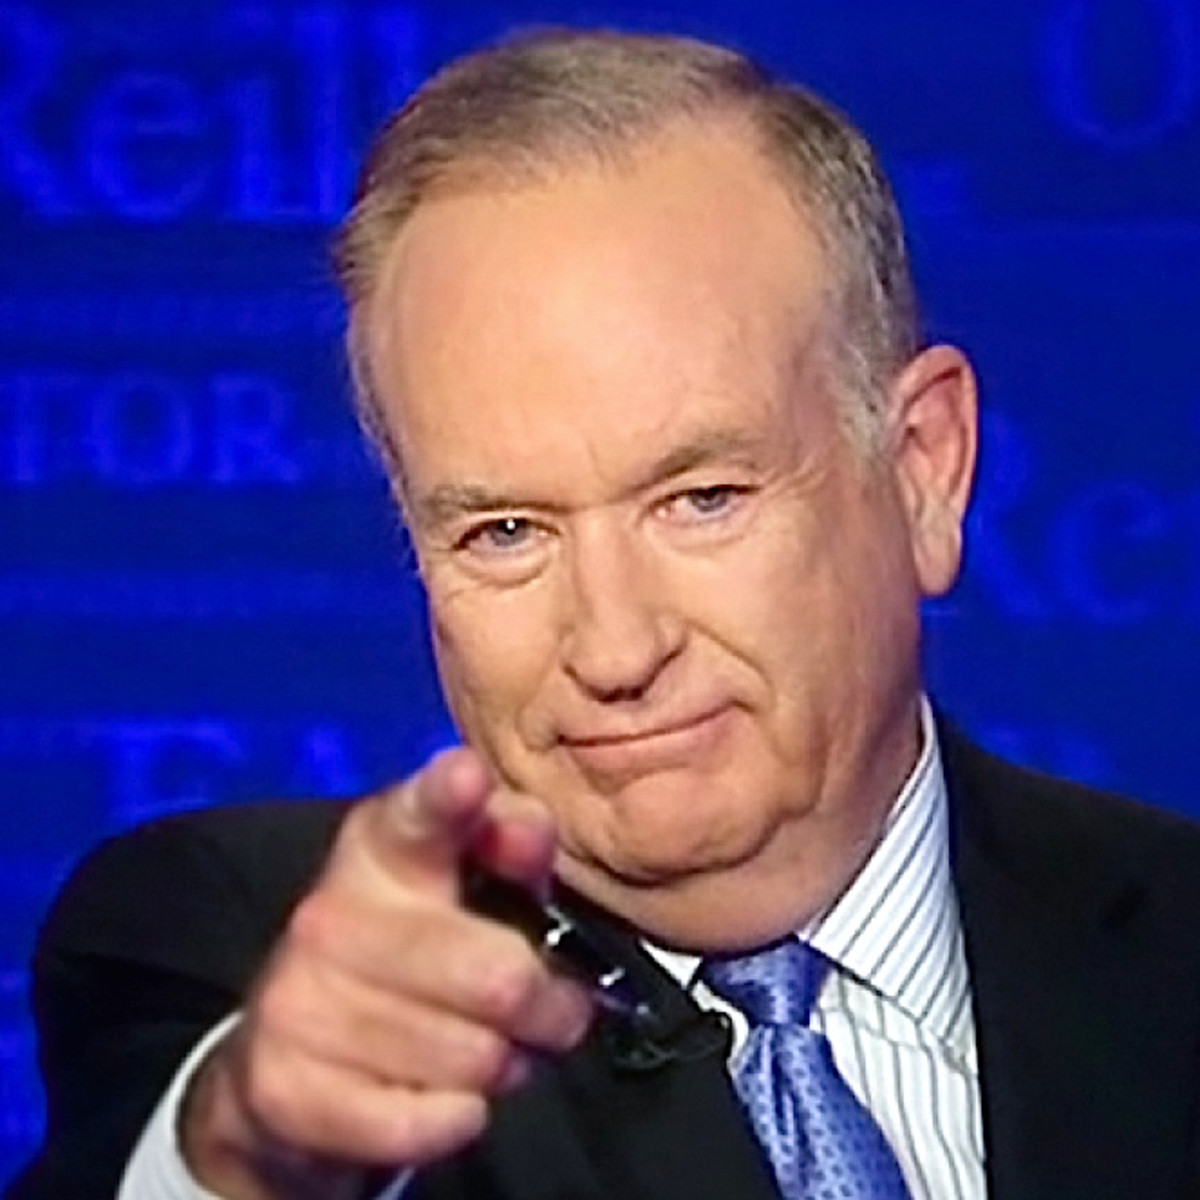 Houston, Bill O'Reilly, October 2017